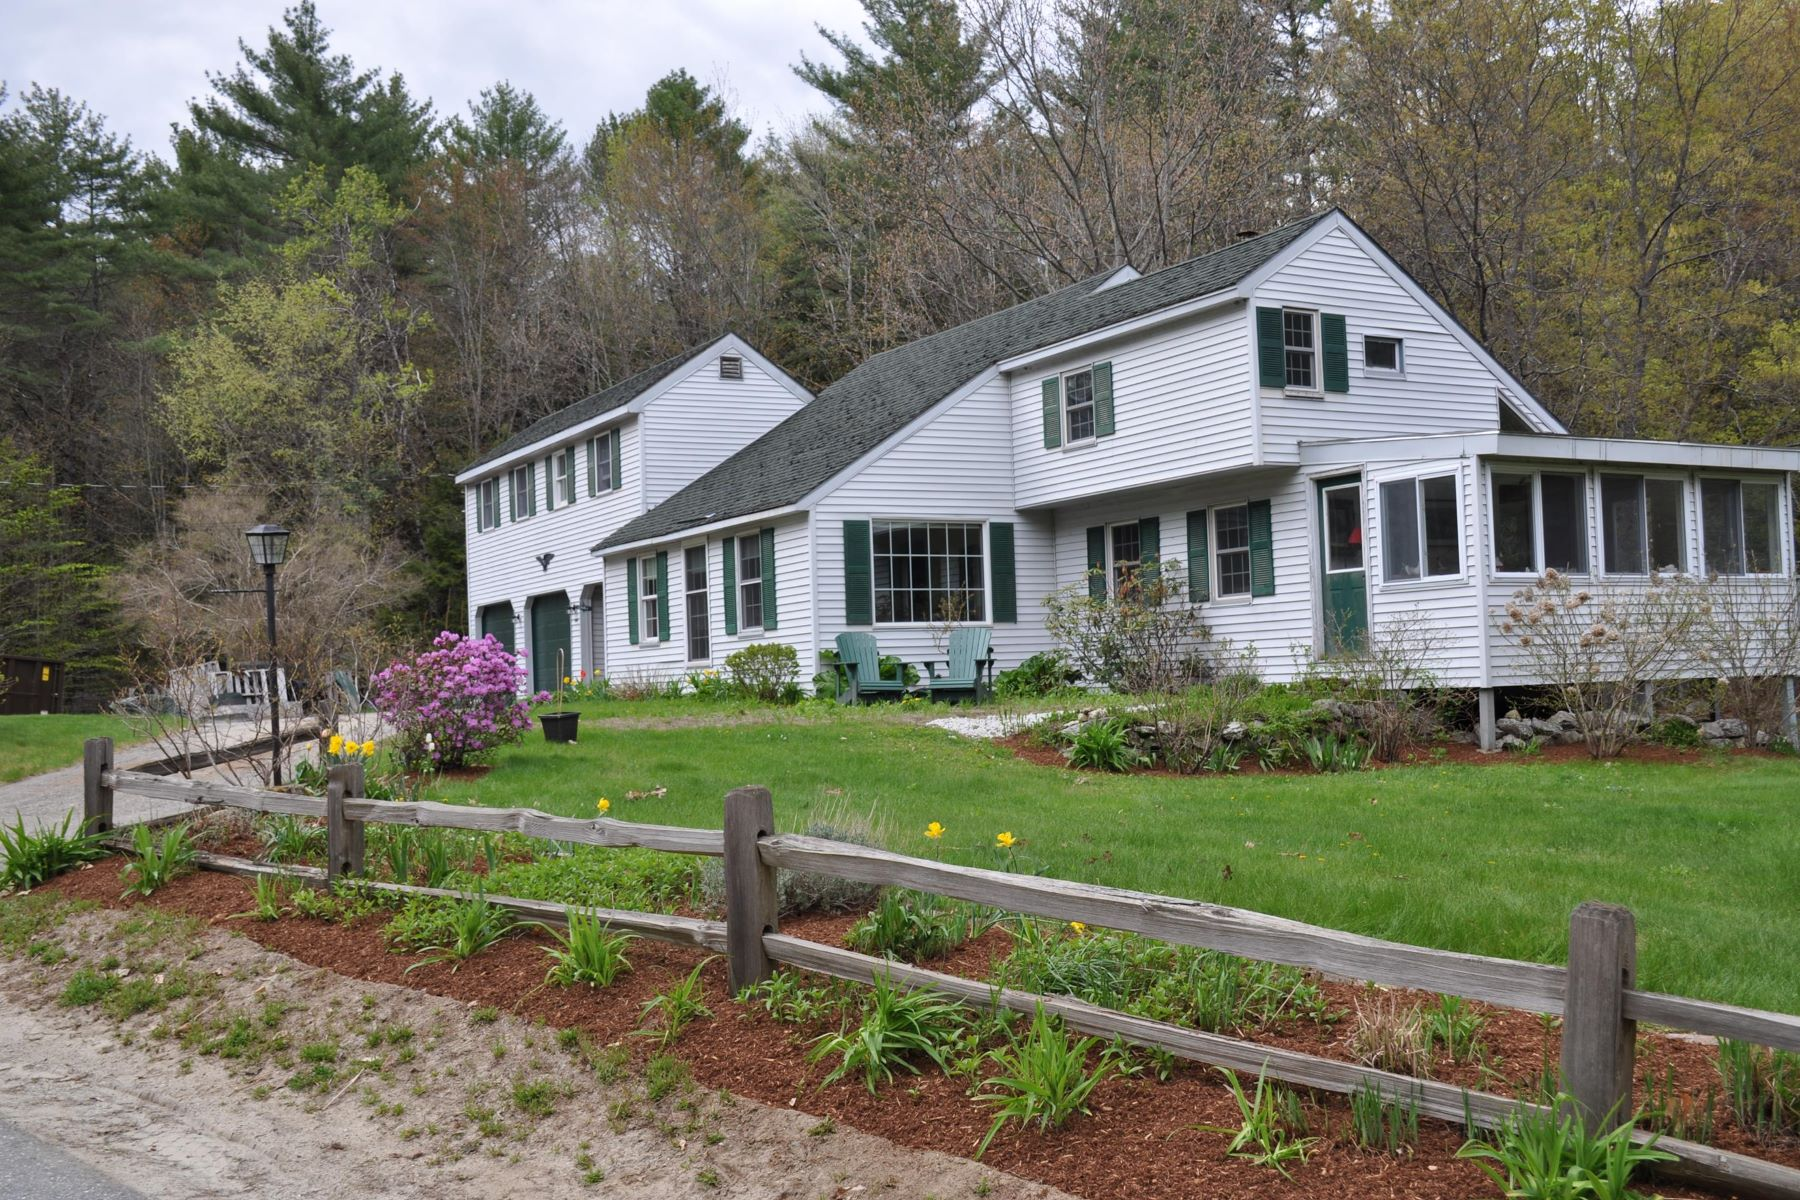 Single Family Home for Sale at Wilmot Loop 42 Cross Hill Rd Wilmot, New Hampshire 03287 United States